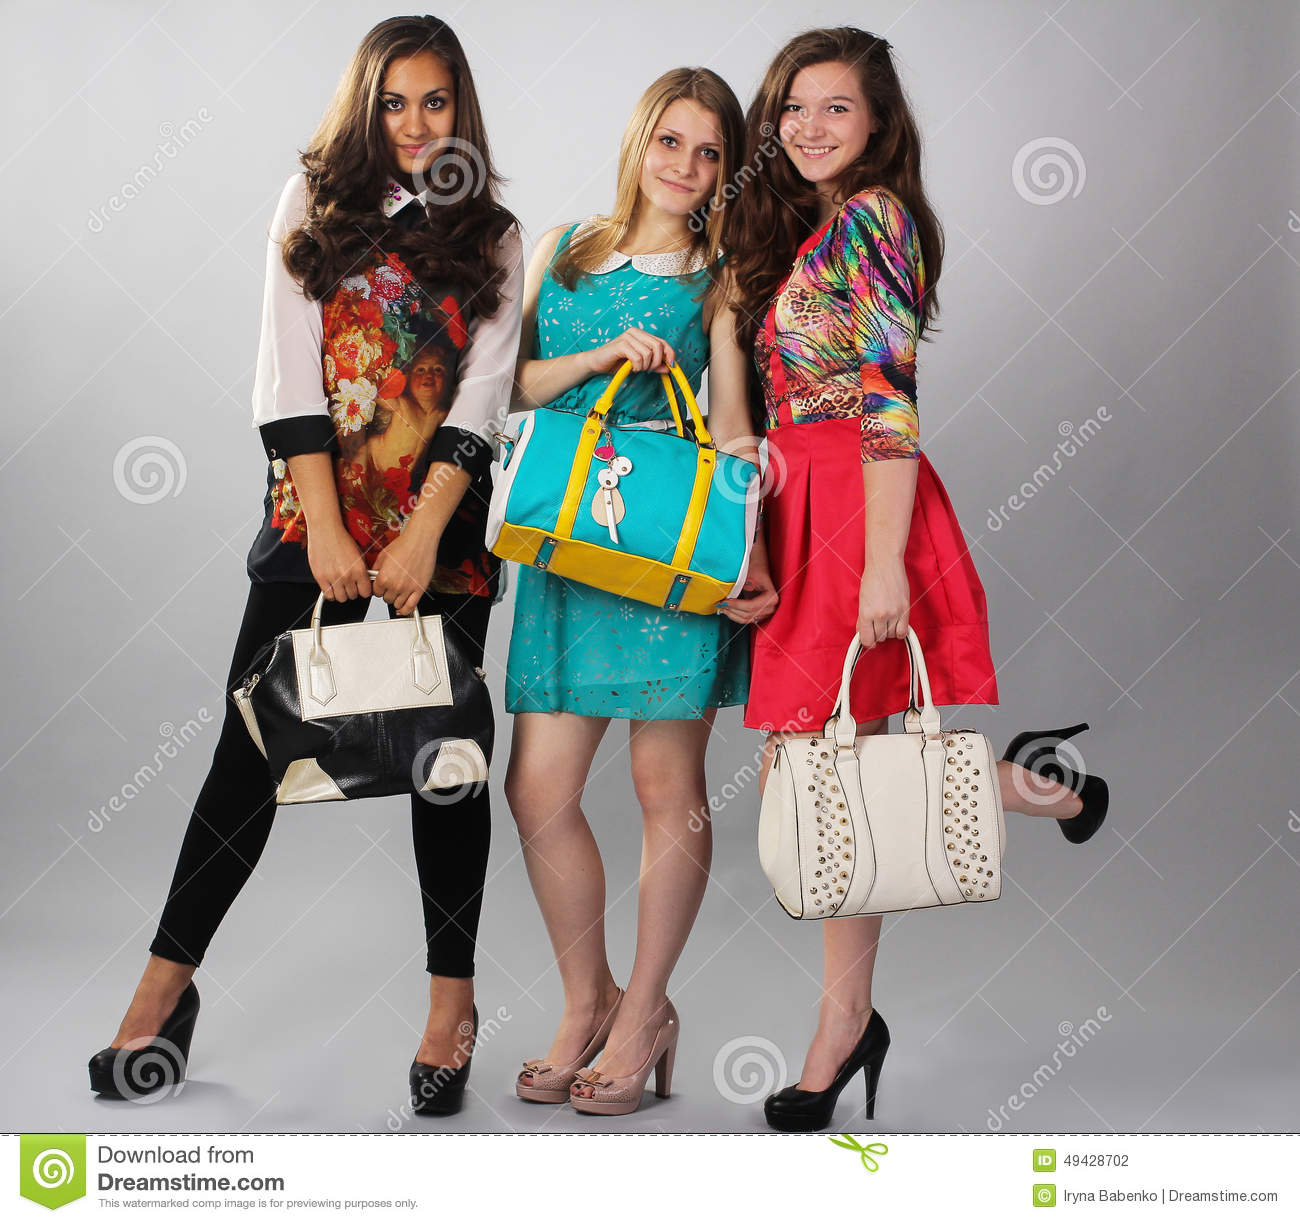 different clothing styles essay The clothing in india also encompasses the wide variety of indian embroidery, prints, handwork, embellishment, styles of wearing cloths a wide mix of indian traditional clothing and western styles can be seen in india.